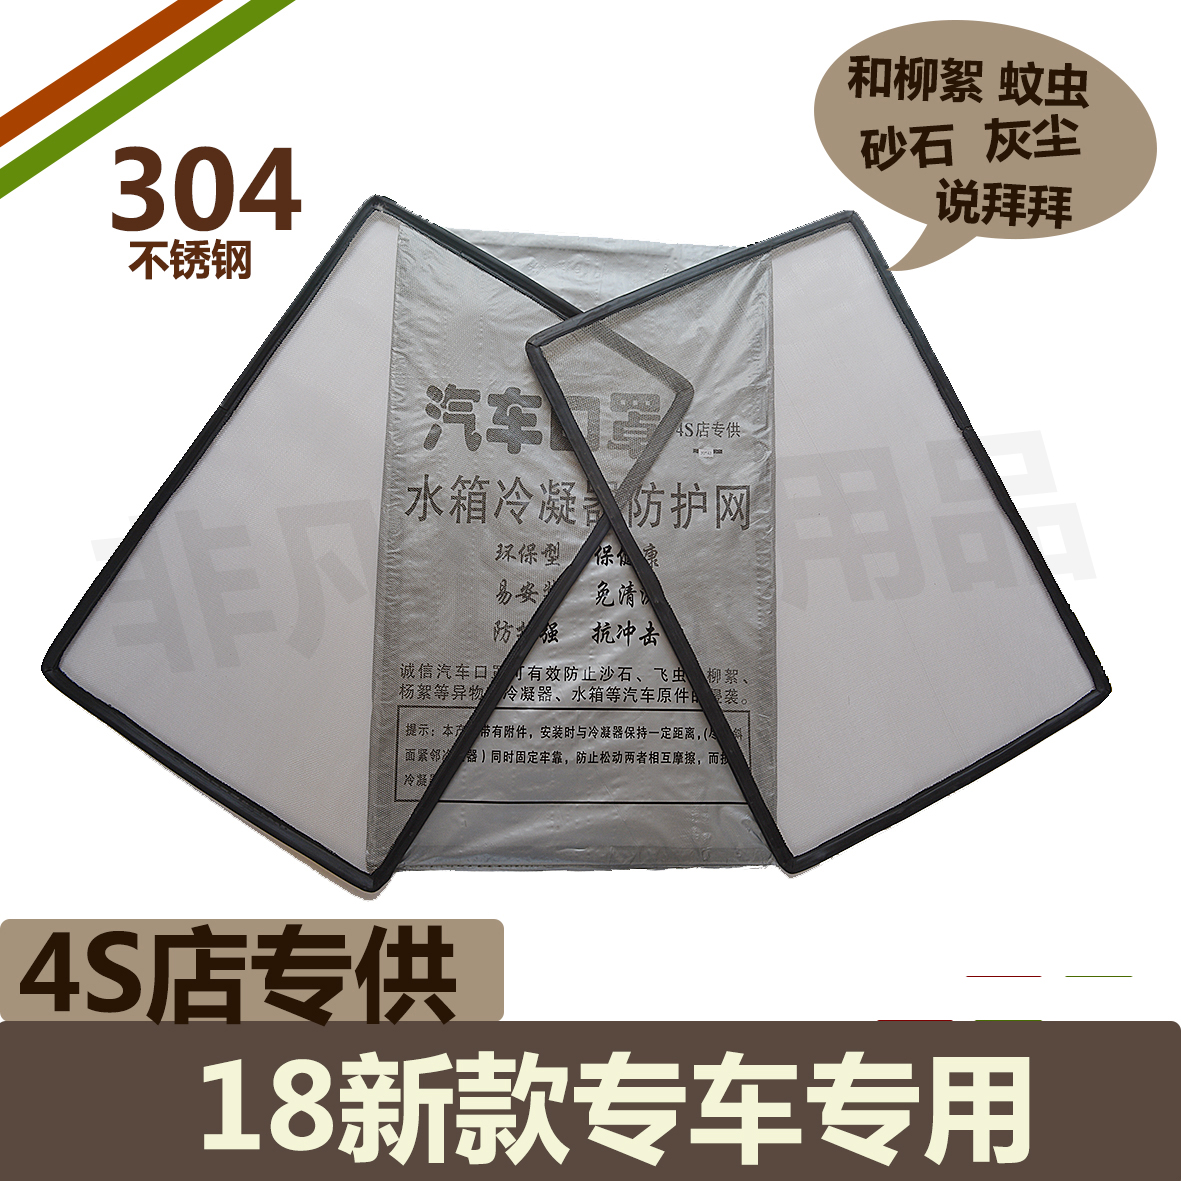 New Type of Insect-proof Net for Automobile Water Tank Special Condenser Water Tank Protection Net for Stainless Steel Special Vehicle